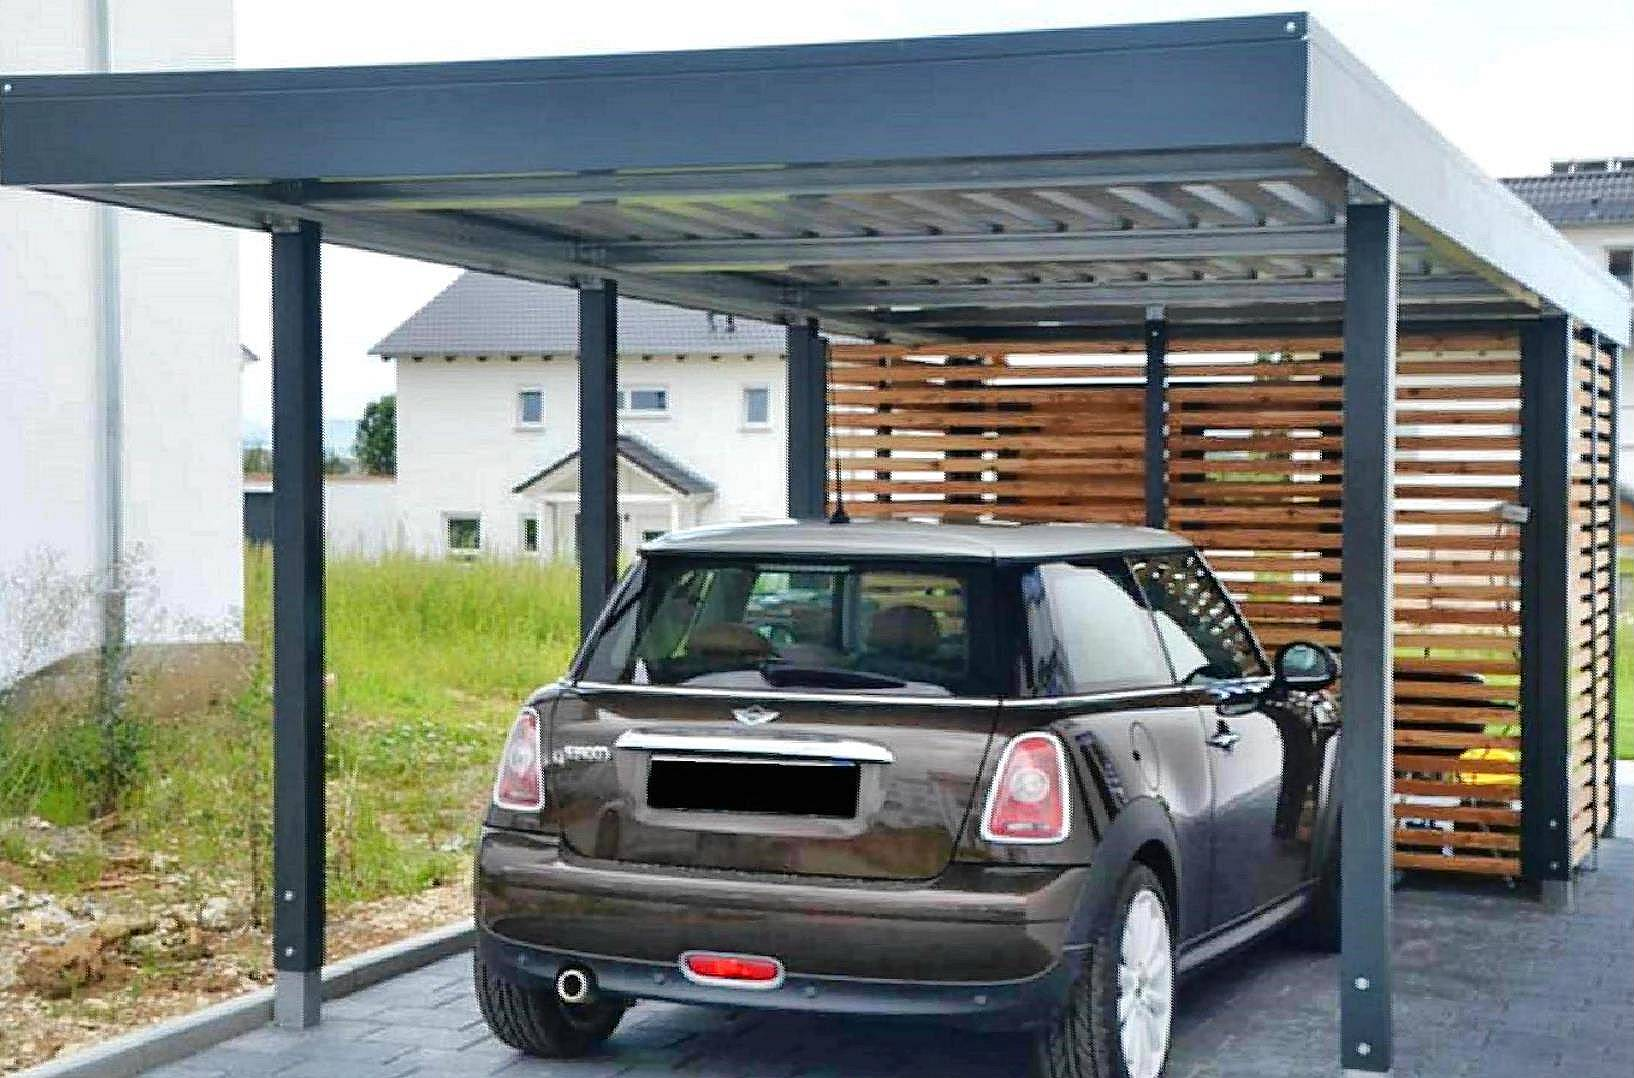 stahlcarport preis carport in holz alu stahl carport. Black Bedroom Furniture Sets. Home Design Ideas